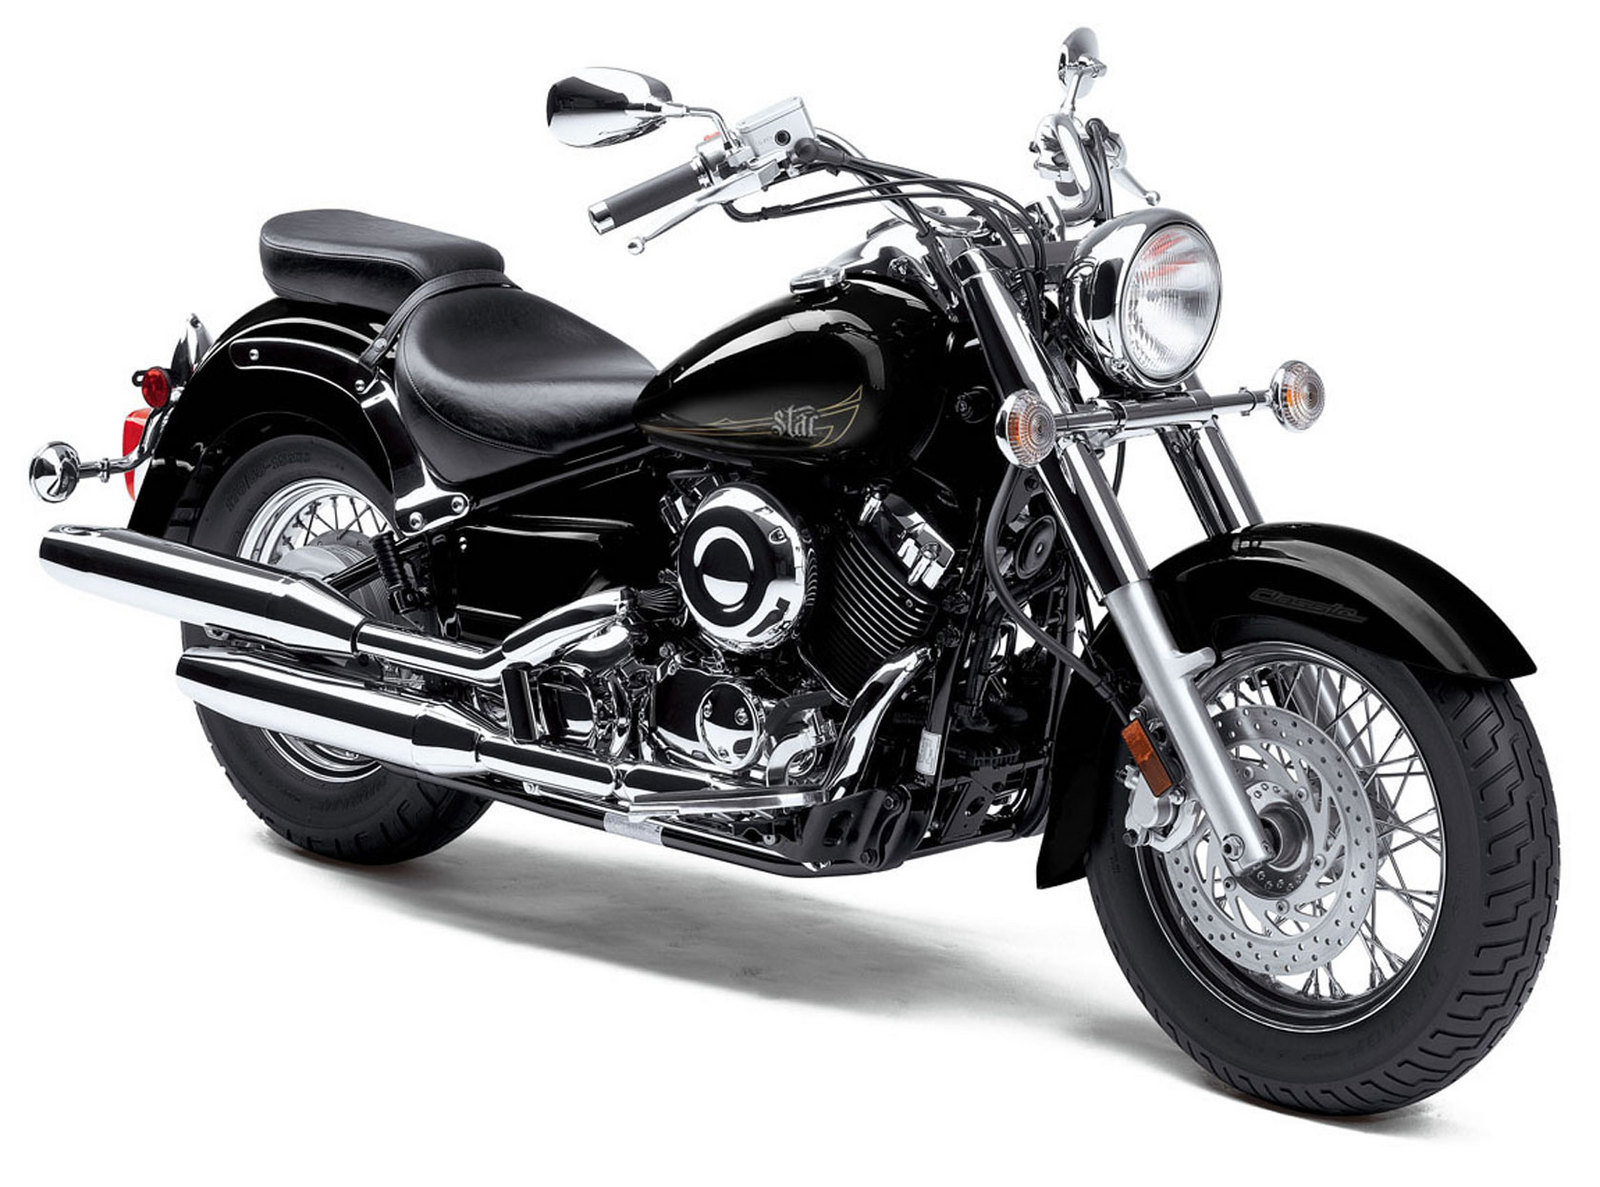 2013 yamaha v star 650 classic review top speed for 1999 yamaha v star 650 classic parts